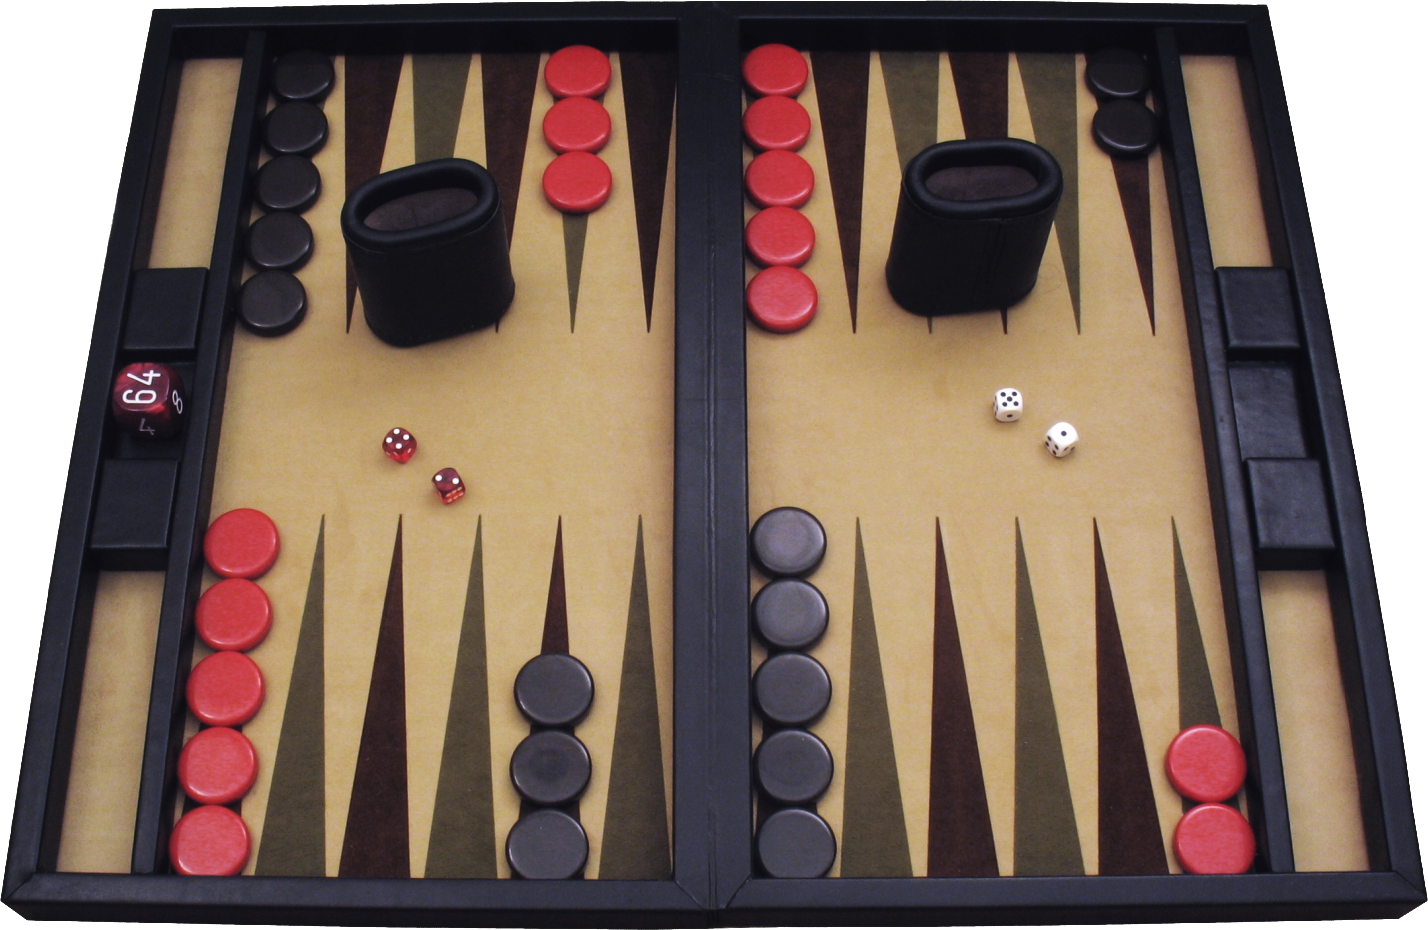 image about Printable Backgammon Board titled Backgammon - Wikipedia